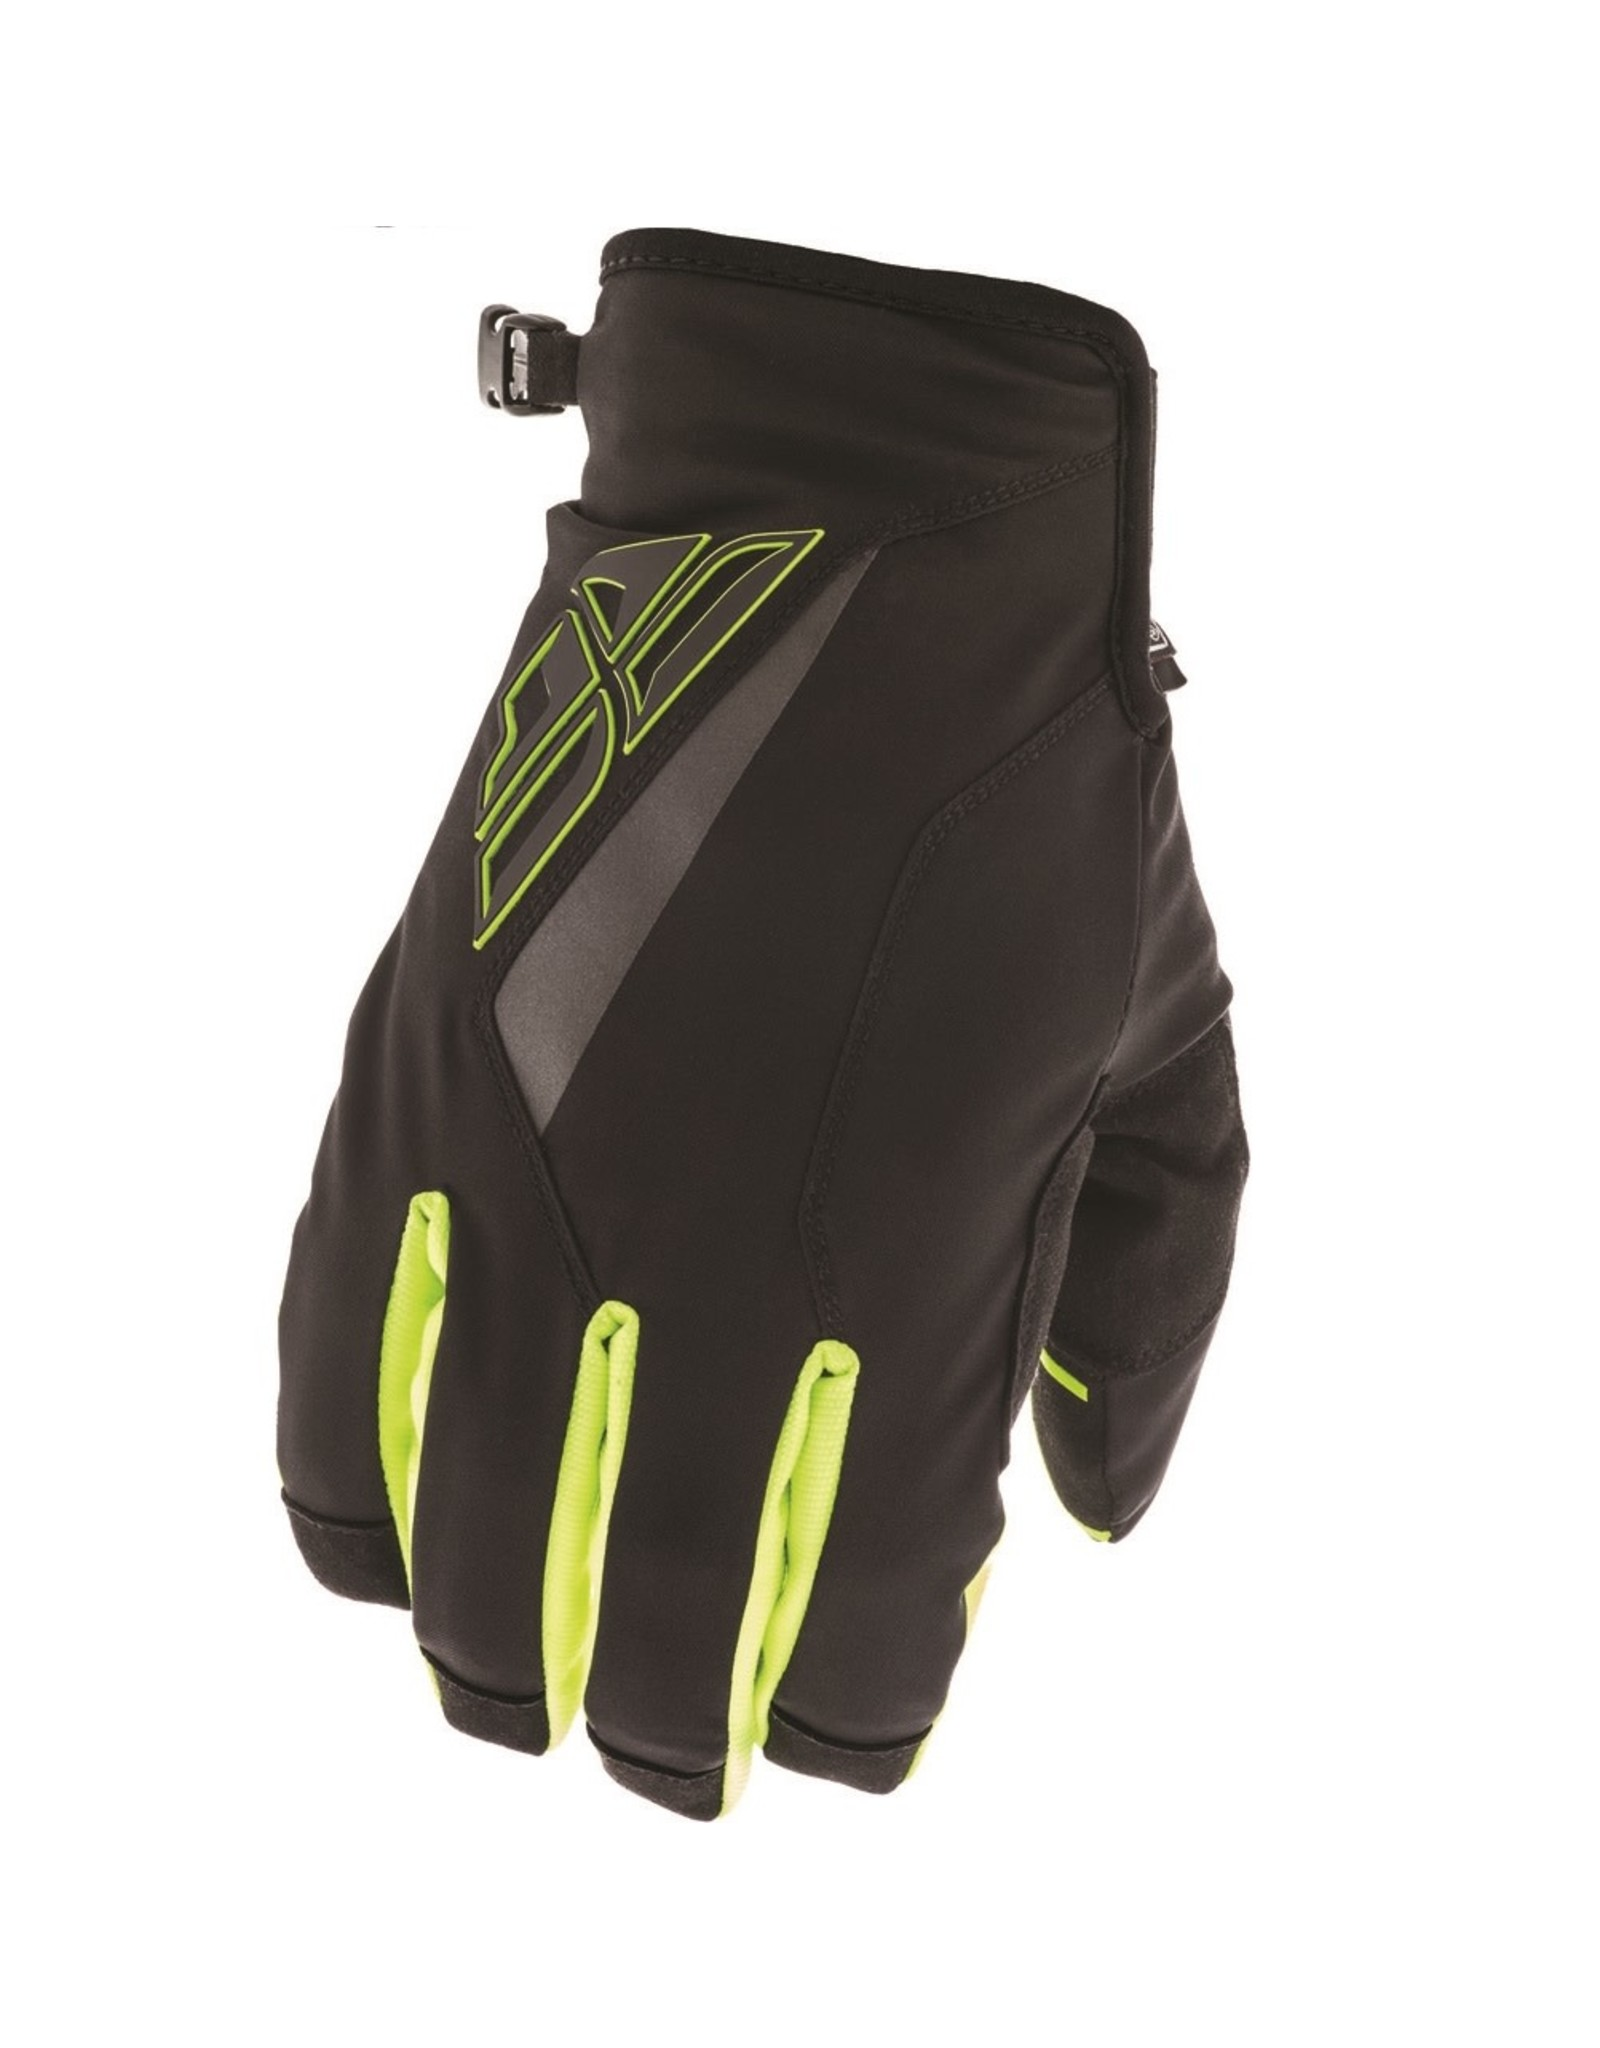 FLY RACING Fly Racing Title Glove